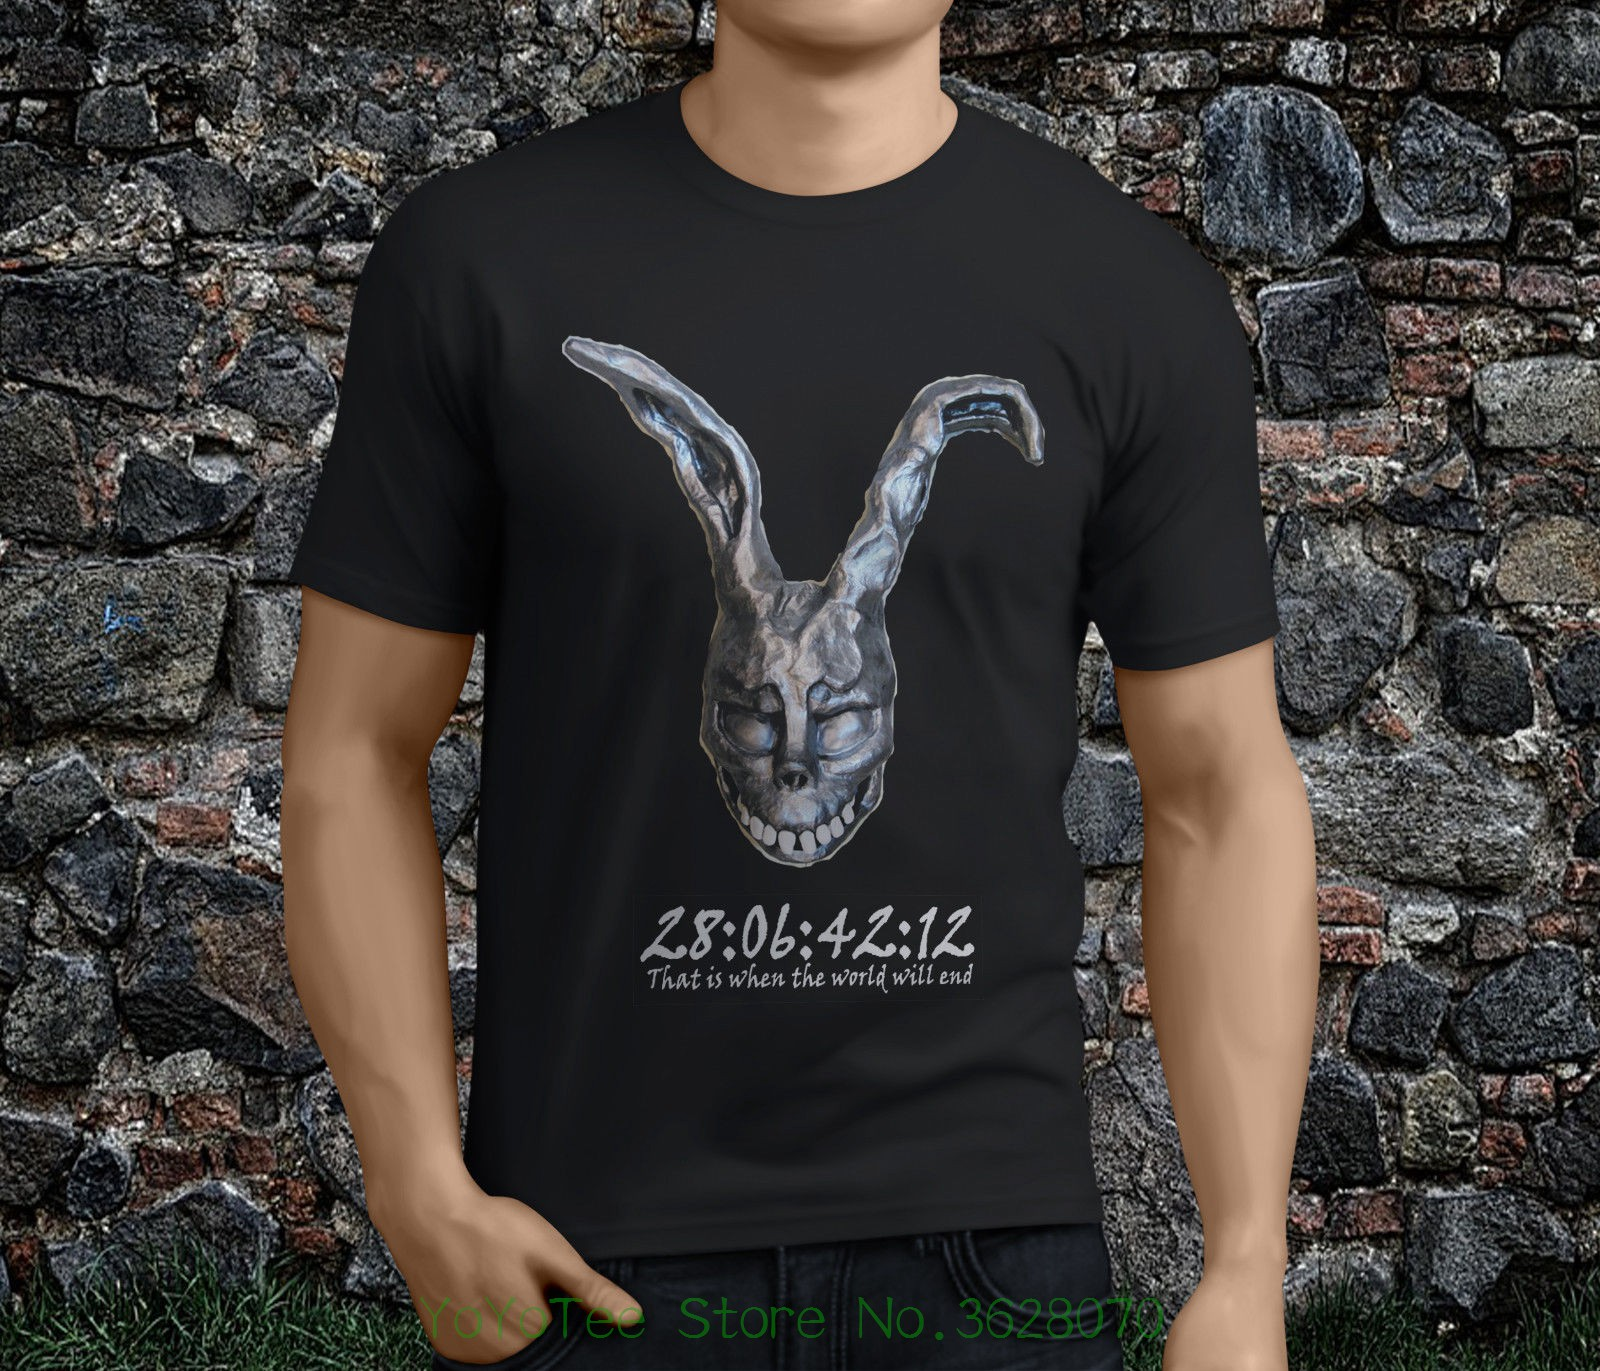 Fashion Men Printed T Shirts New Popular Donnie Darko Thriller Movie Black Men' ; S Tshirt S - 3xl image